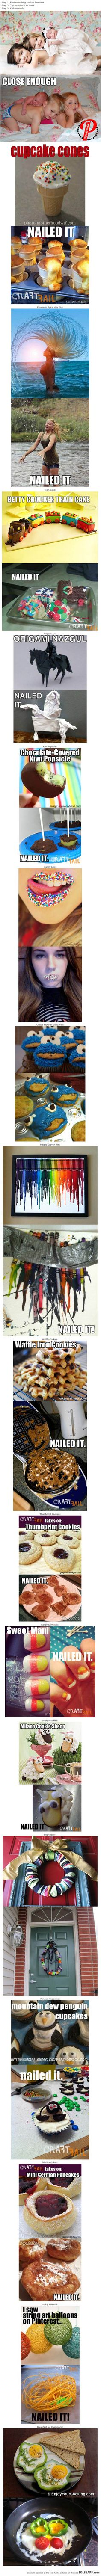 nailed it.  So funny!! cookie monster, nail, real life, cupcakes, hair flip, funni, pinterest fail, true stories, crafts